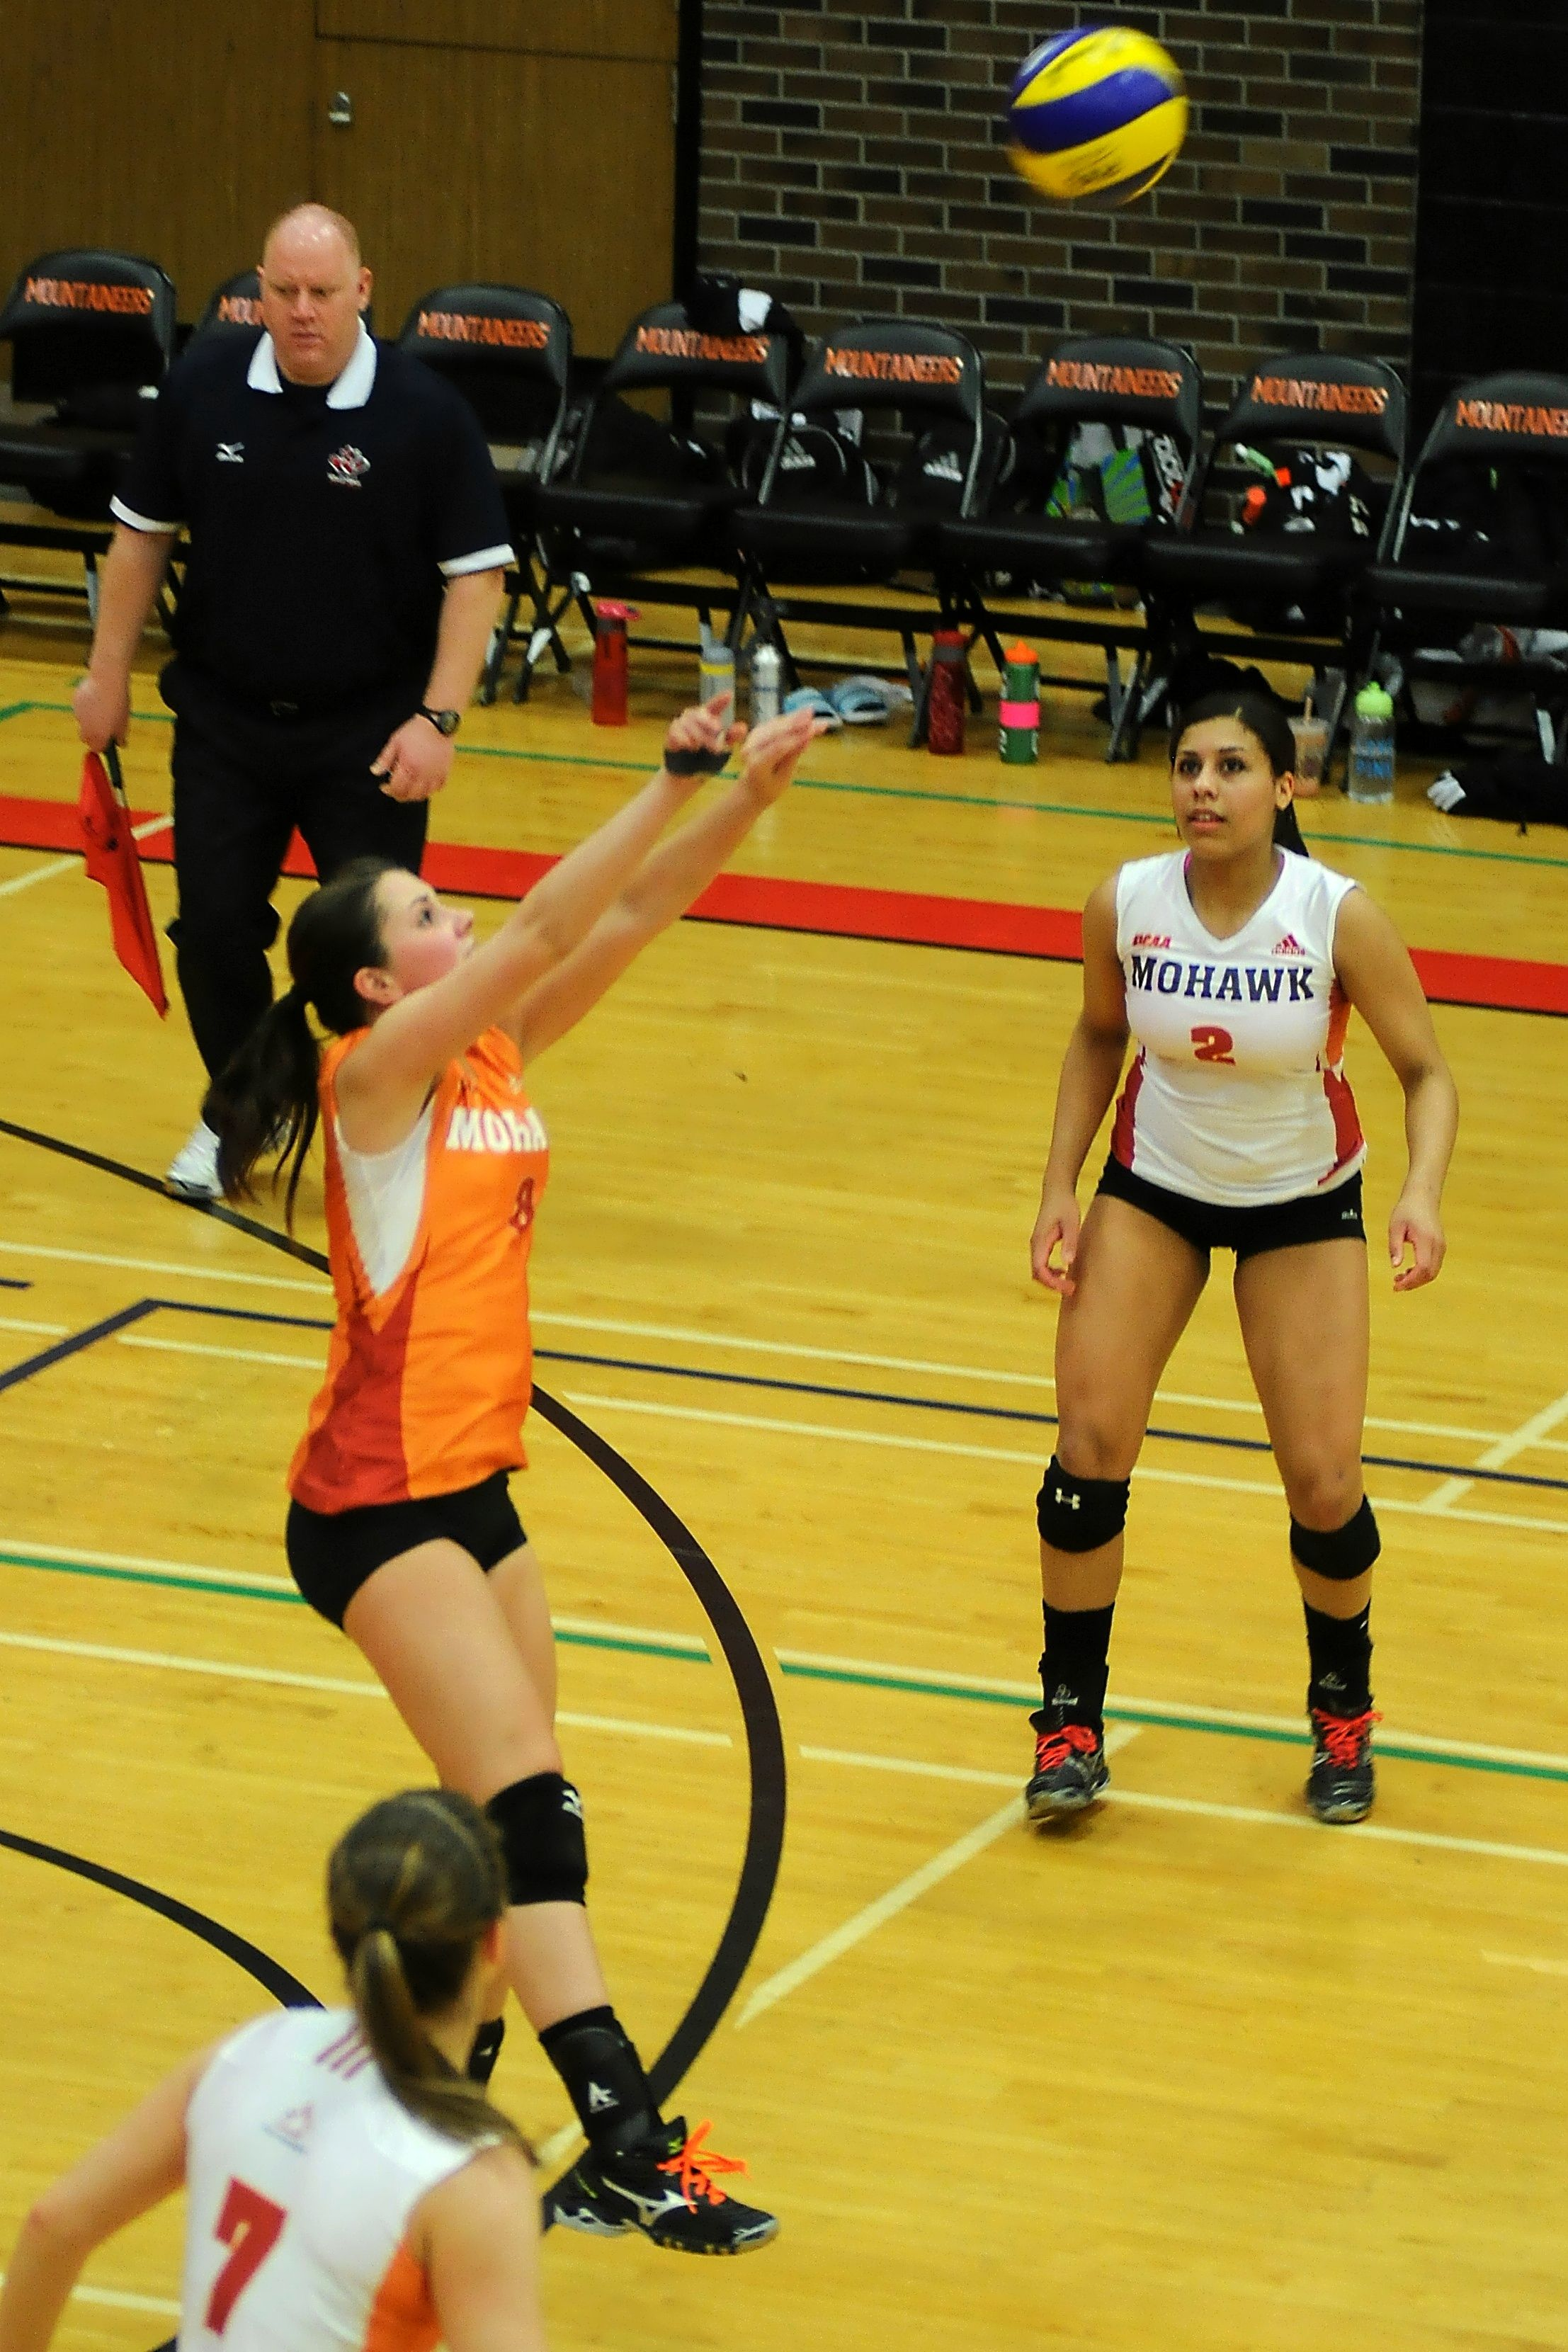 Slutty Volleyball Awesome volleyball the only reason guys whatch volleyball - find 65+ top